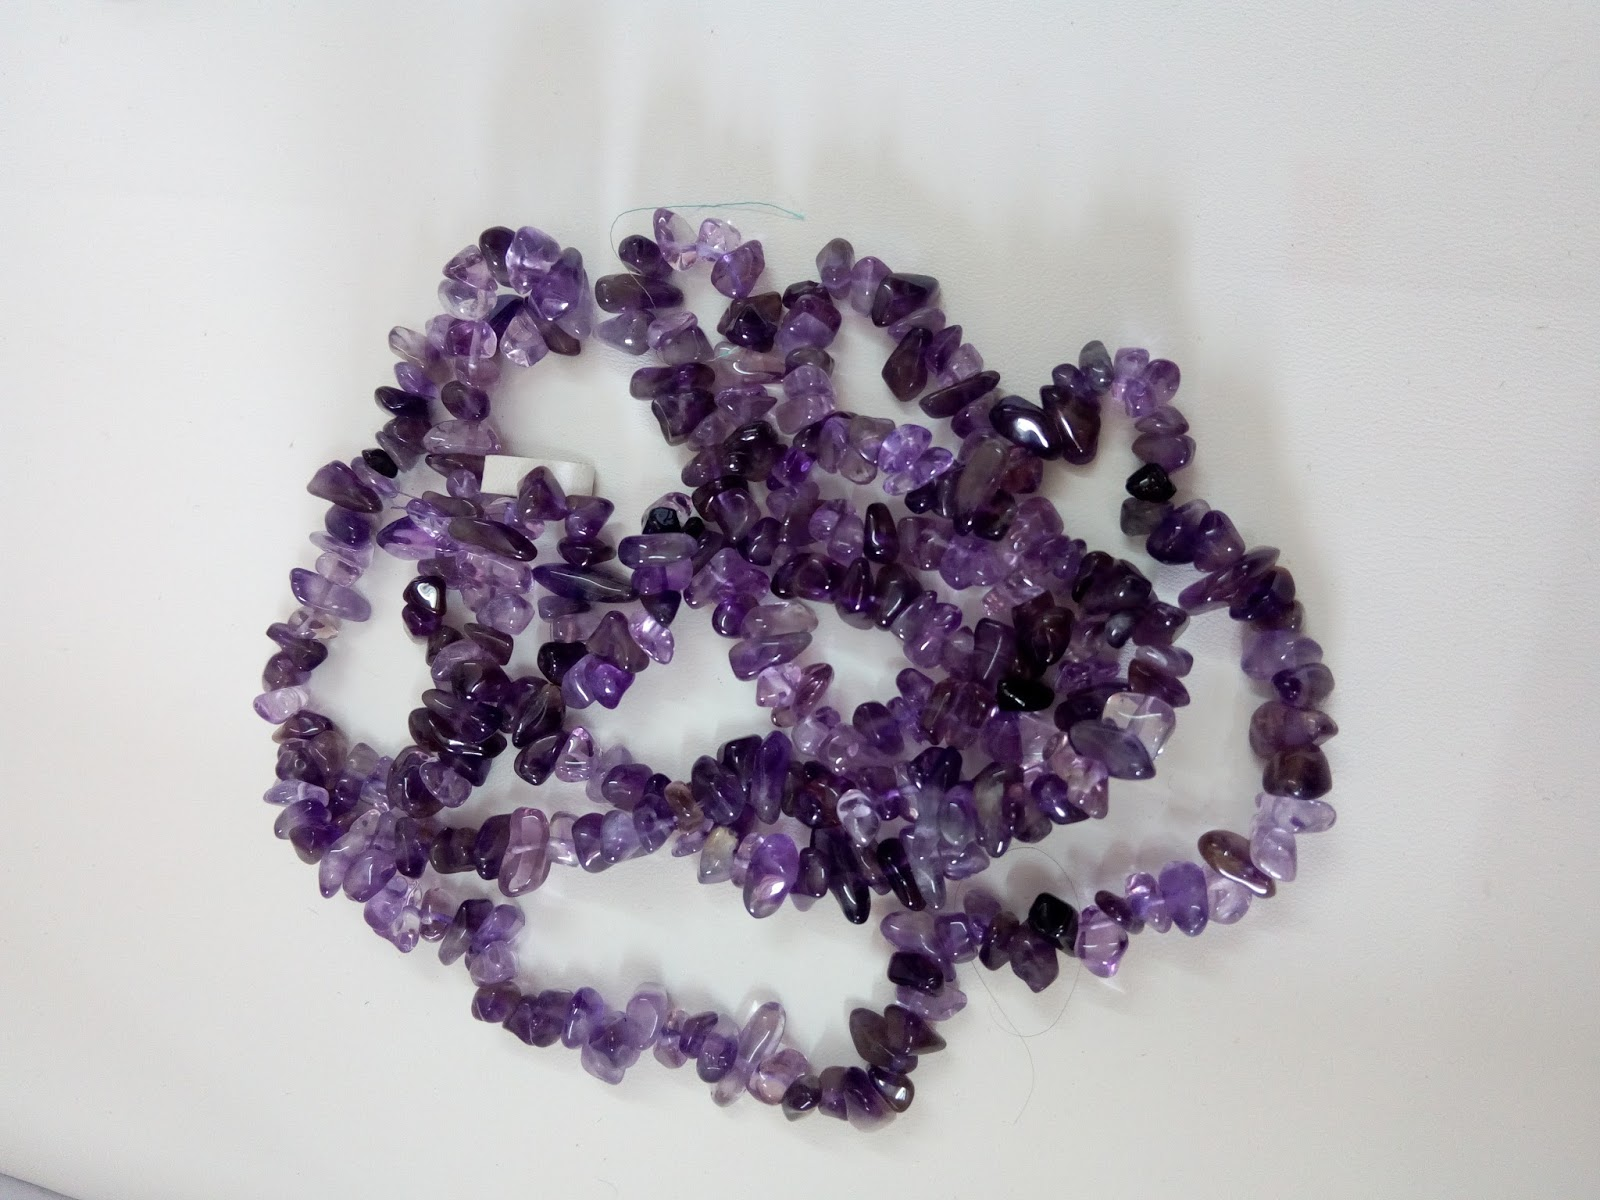 Which stone is suitable for Aquarius